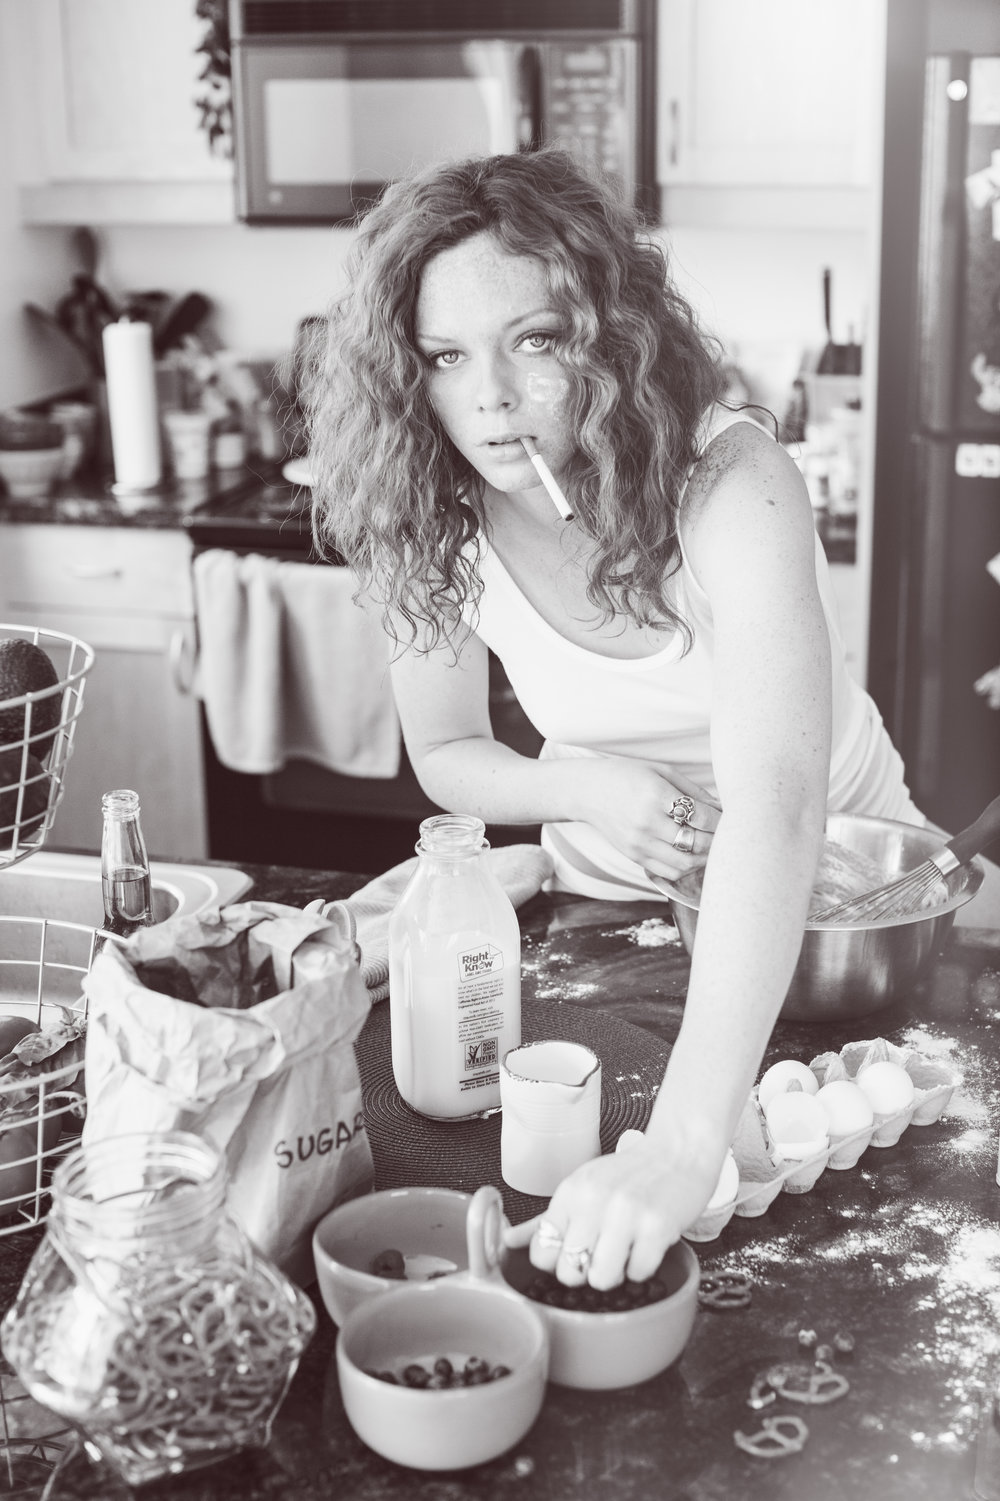 kate.vs.kitchen-20.jpg